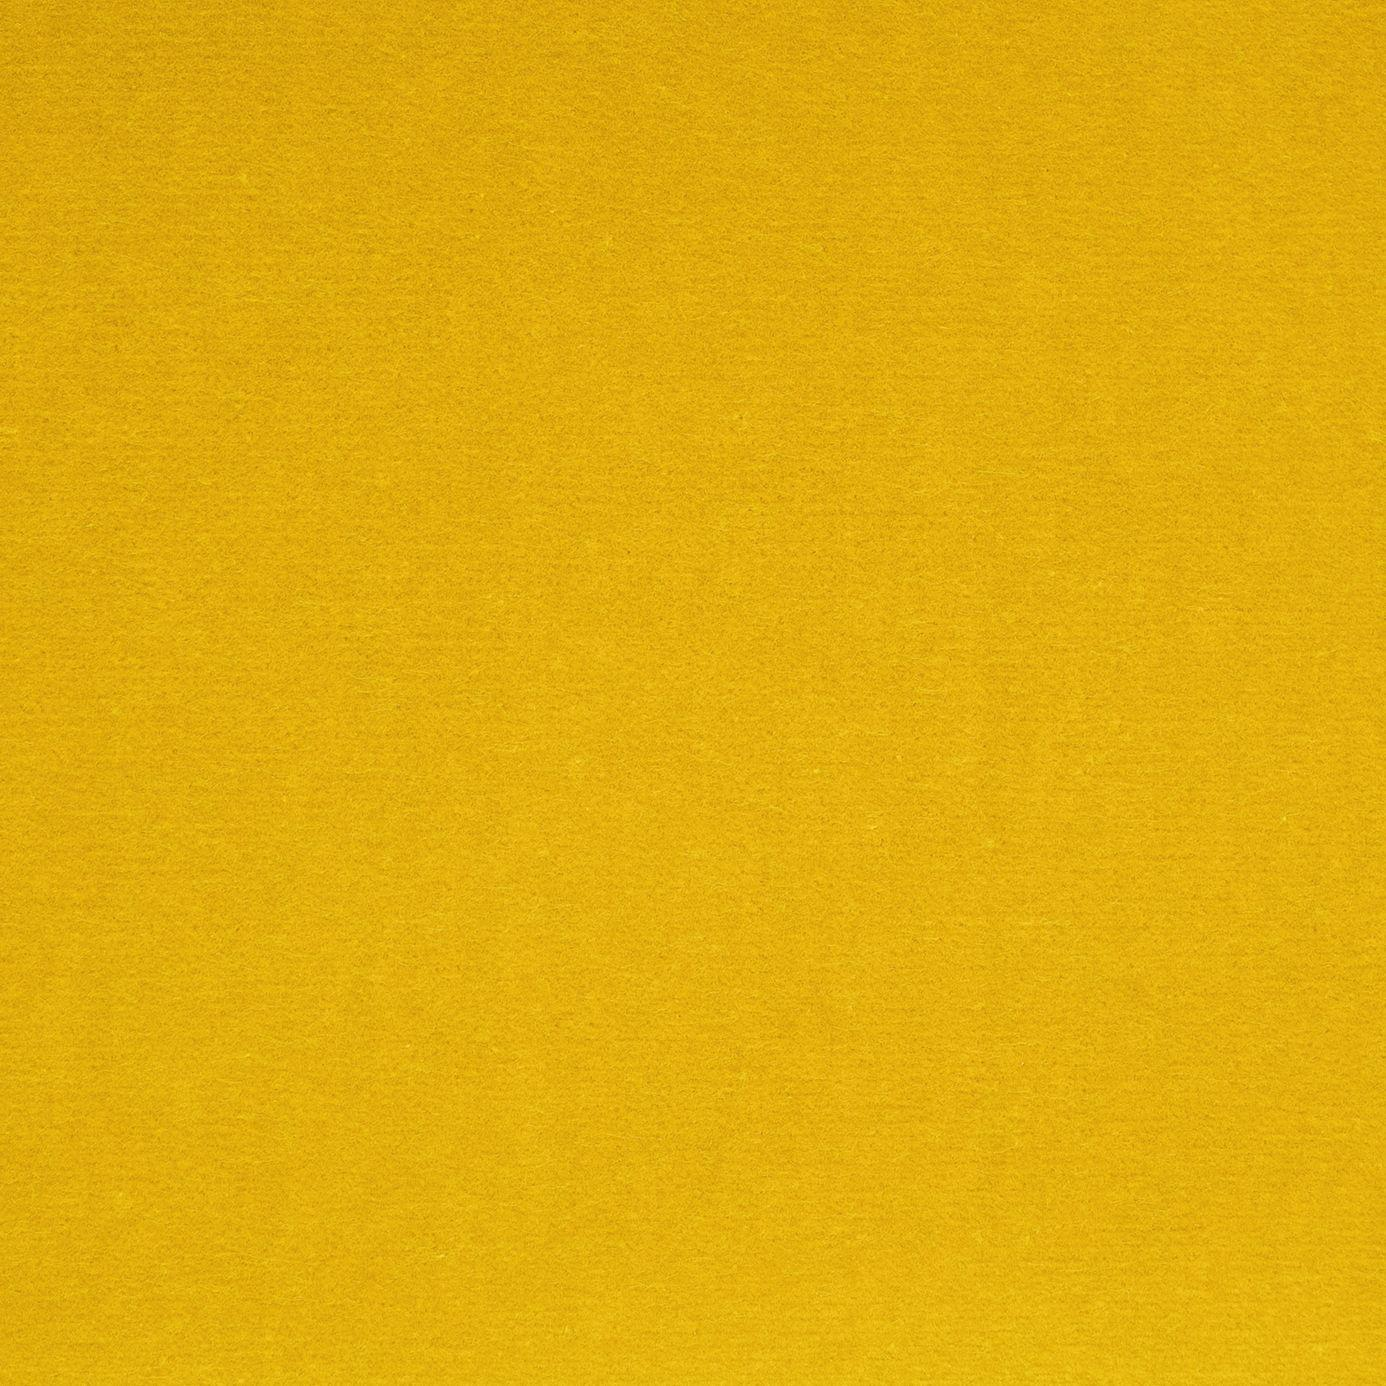 Mustard and gold wallpaper